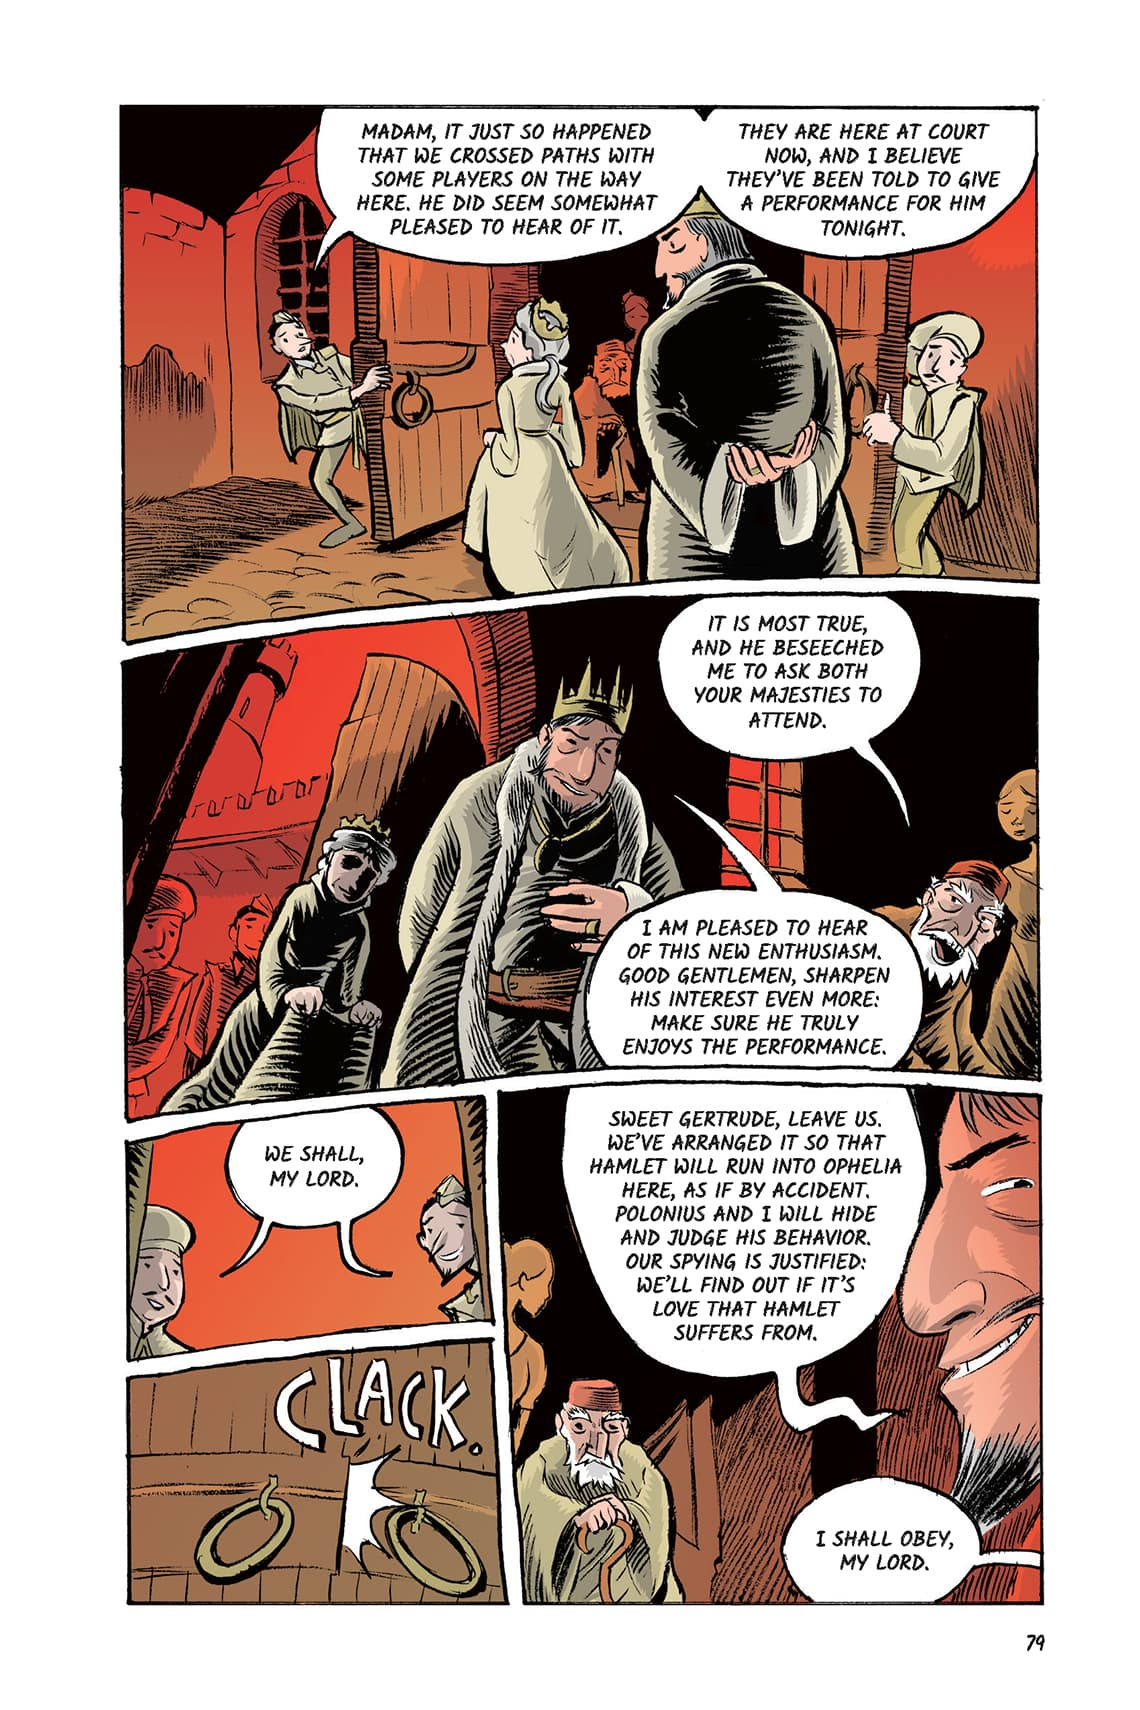 Hamlet Act 3 Scene 1 Page 79 Graphic Novel Sparknotes No Fear Shakespeare